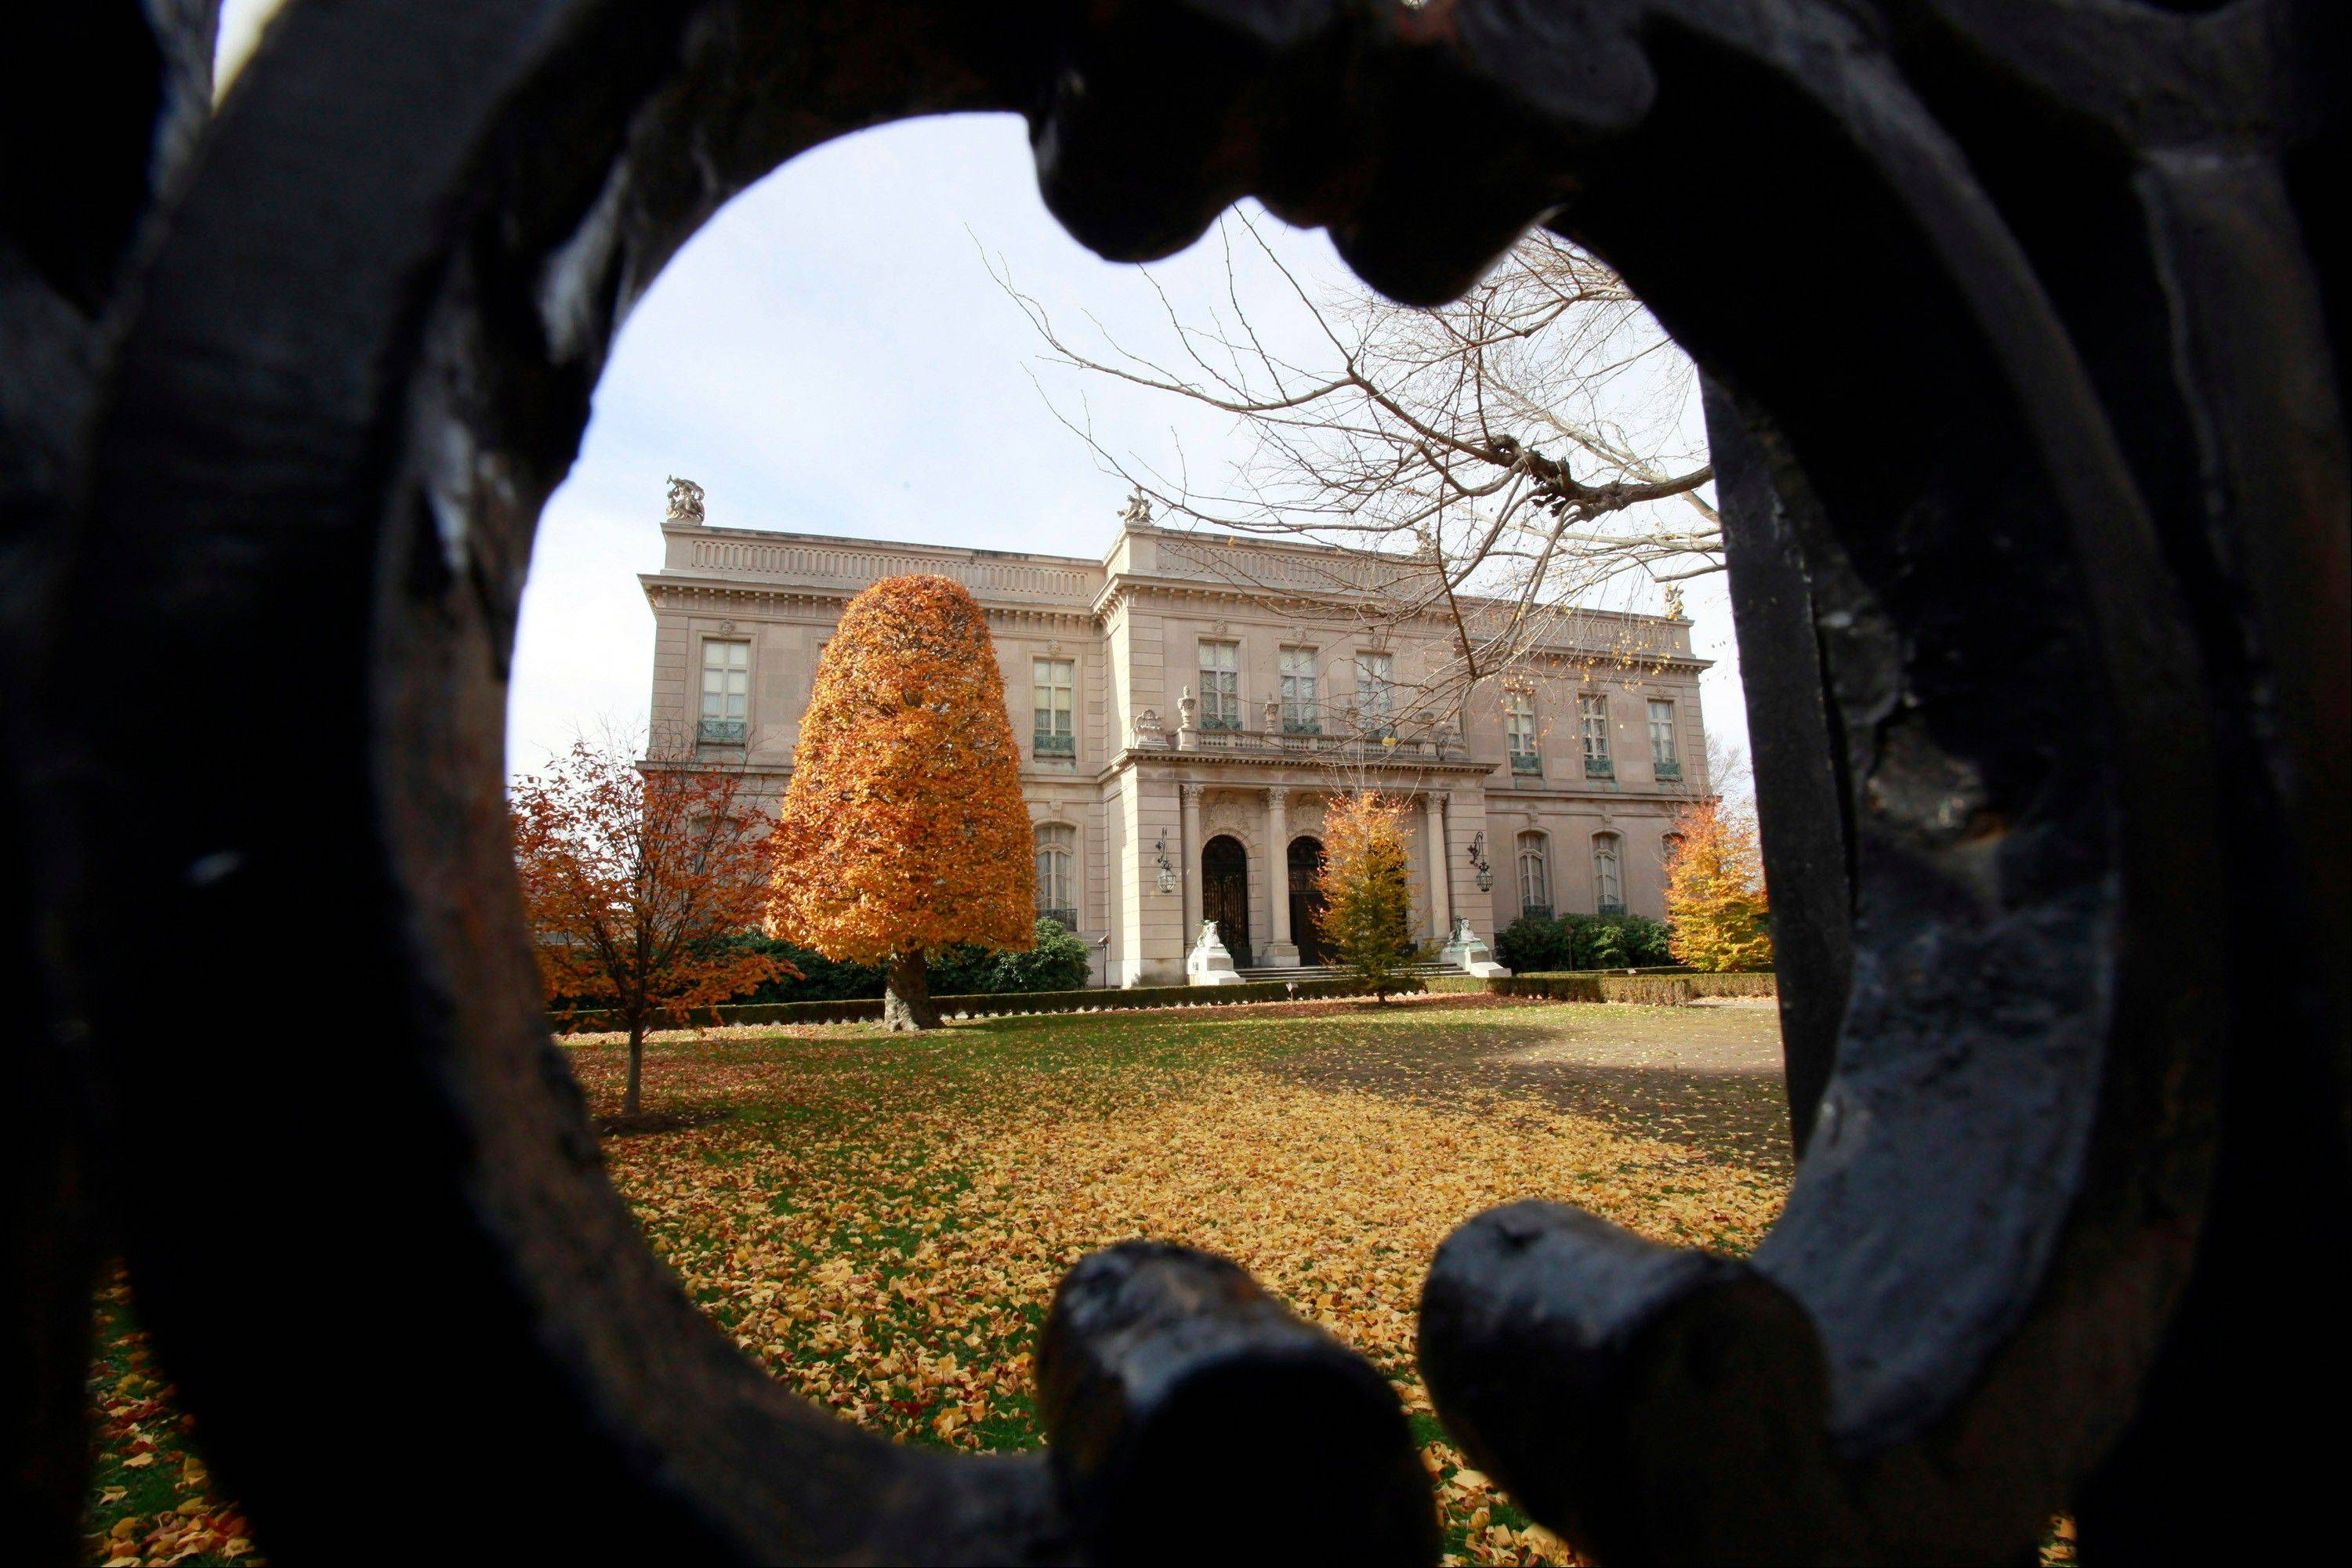 The Elms mansion as seen through an opening in an iron fence, in Newport, R.I. Newly discovered photographs, documents and family histories have inspired the creation of a tour about servants at The Elms.